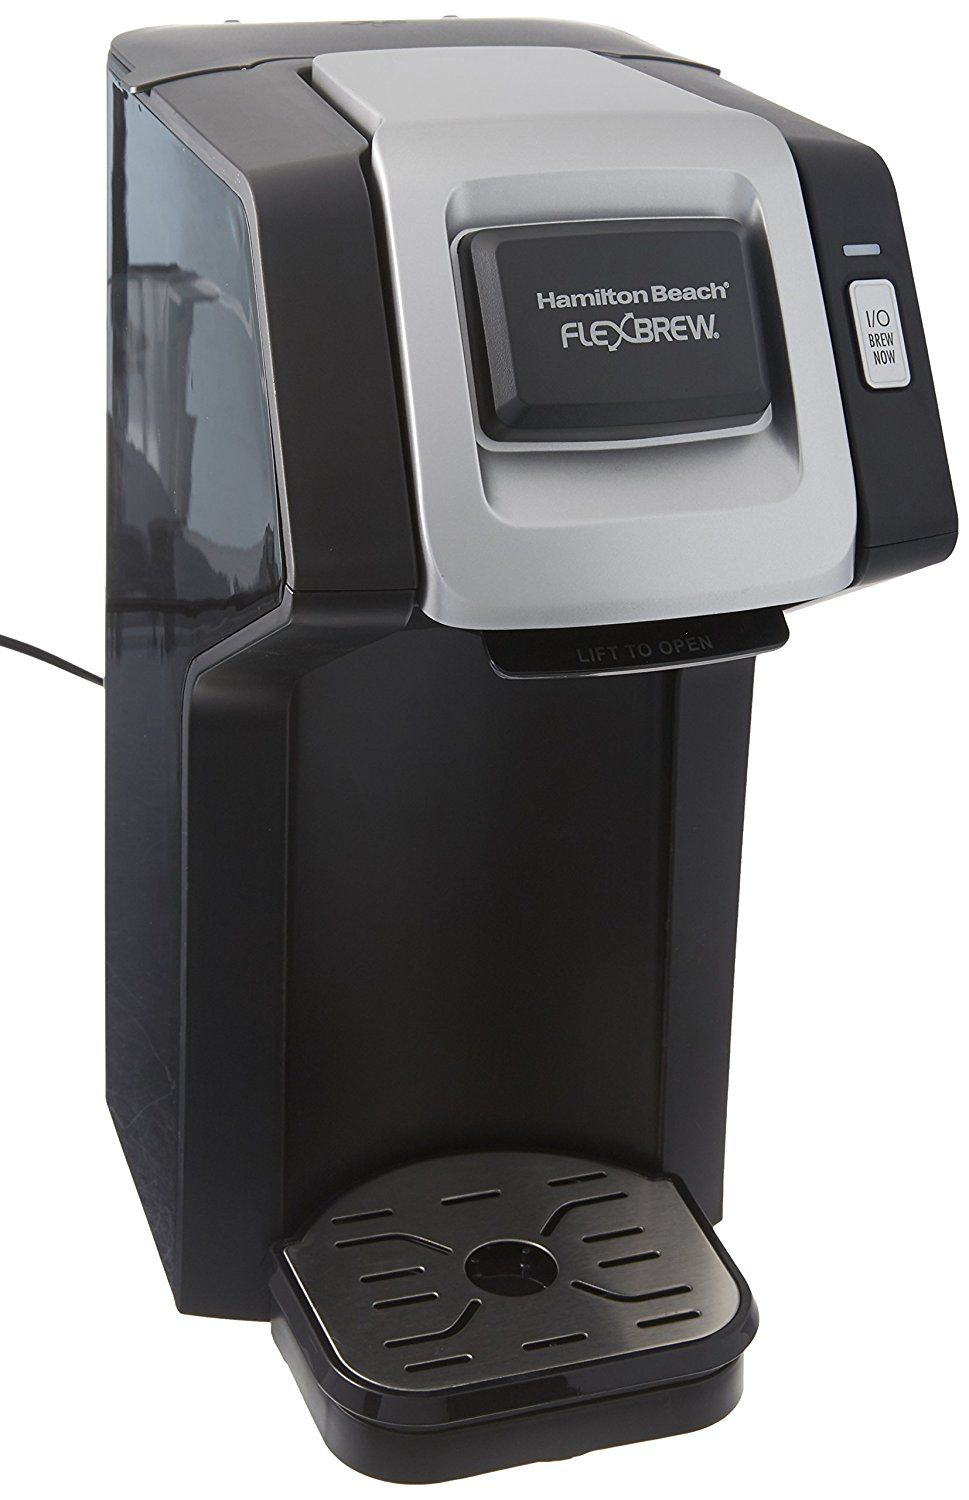 Hamilton Beach Flexbrew Thermal Coffee Maker Single Serve And Full